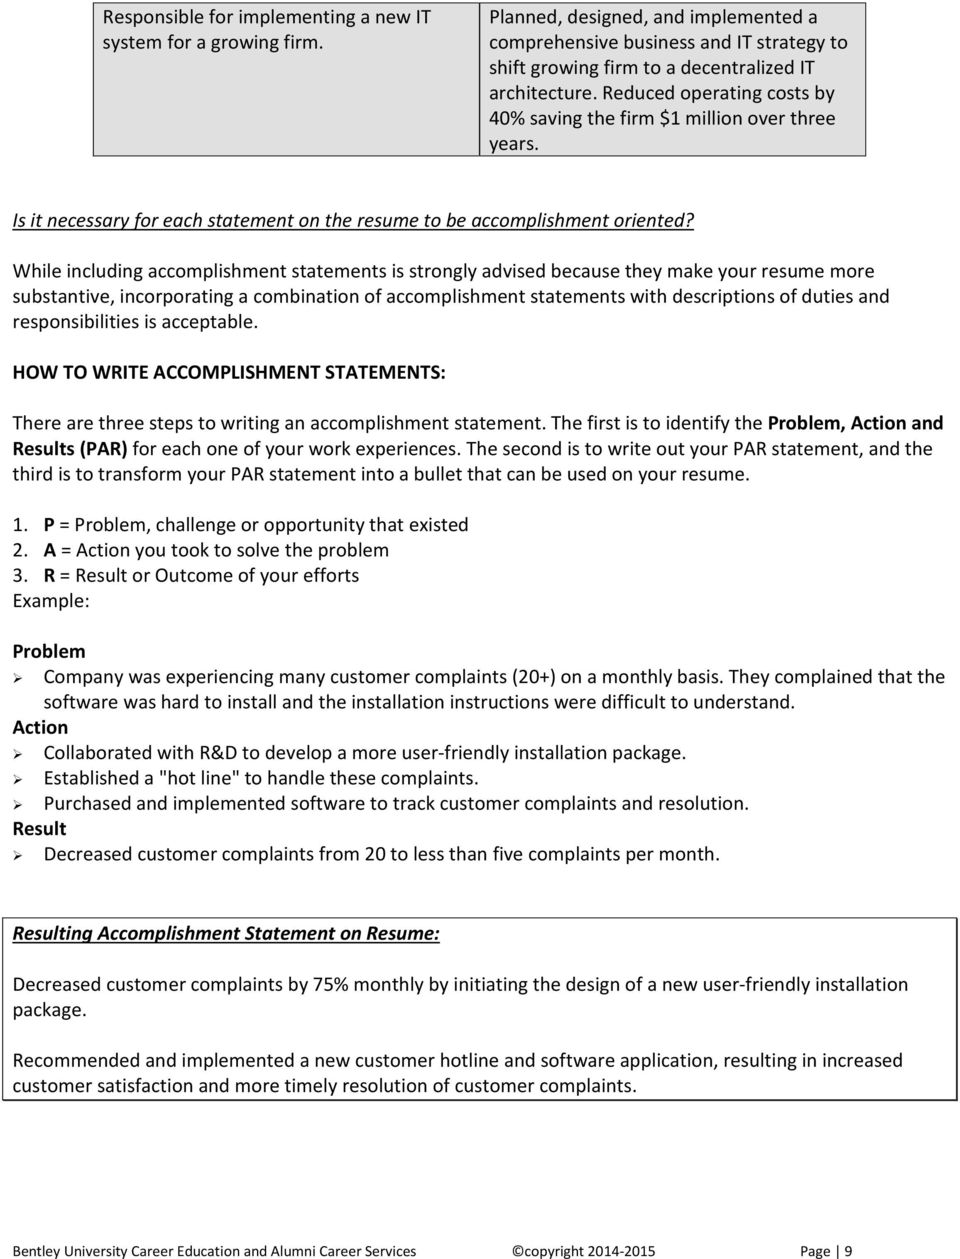 While including accomplishment statements is strongly advised because they make your resume more substantive, incorporating a combination of accomplishment statements with descriptions of duties and